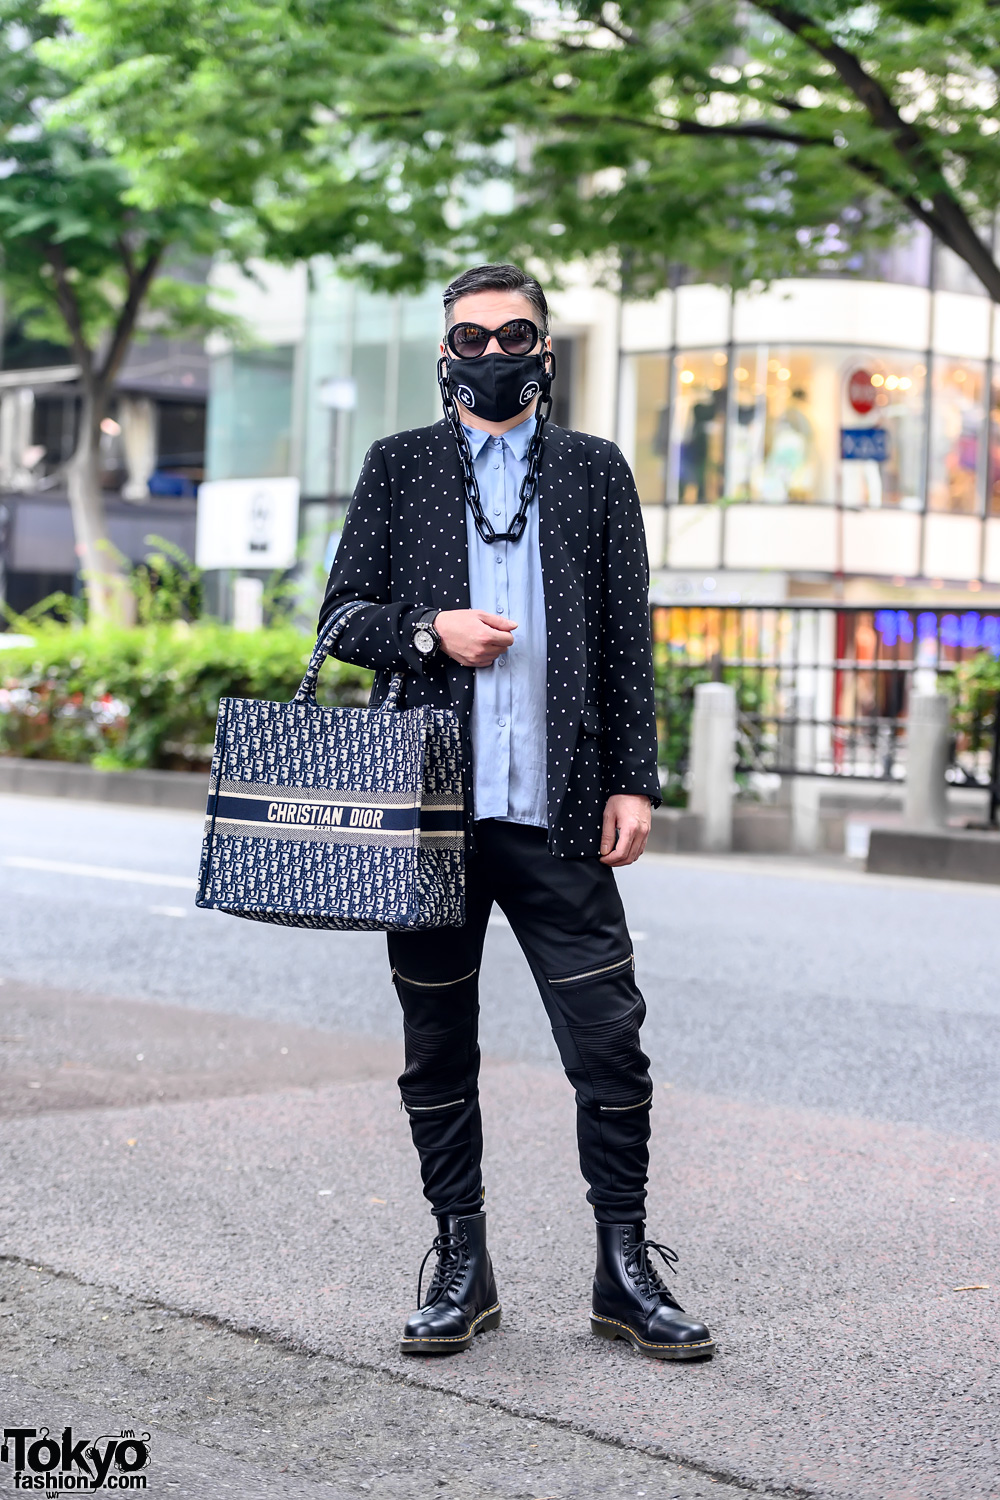 Japanese Stylist in Chanel Logo Face Mask